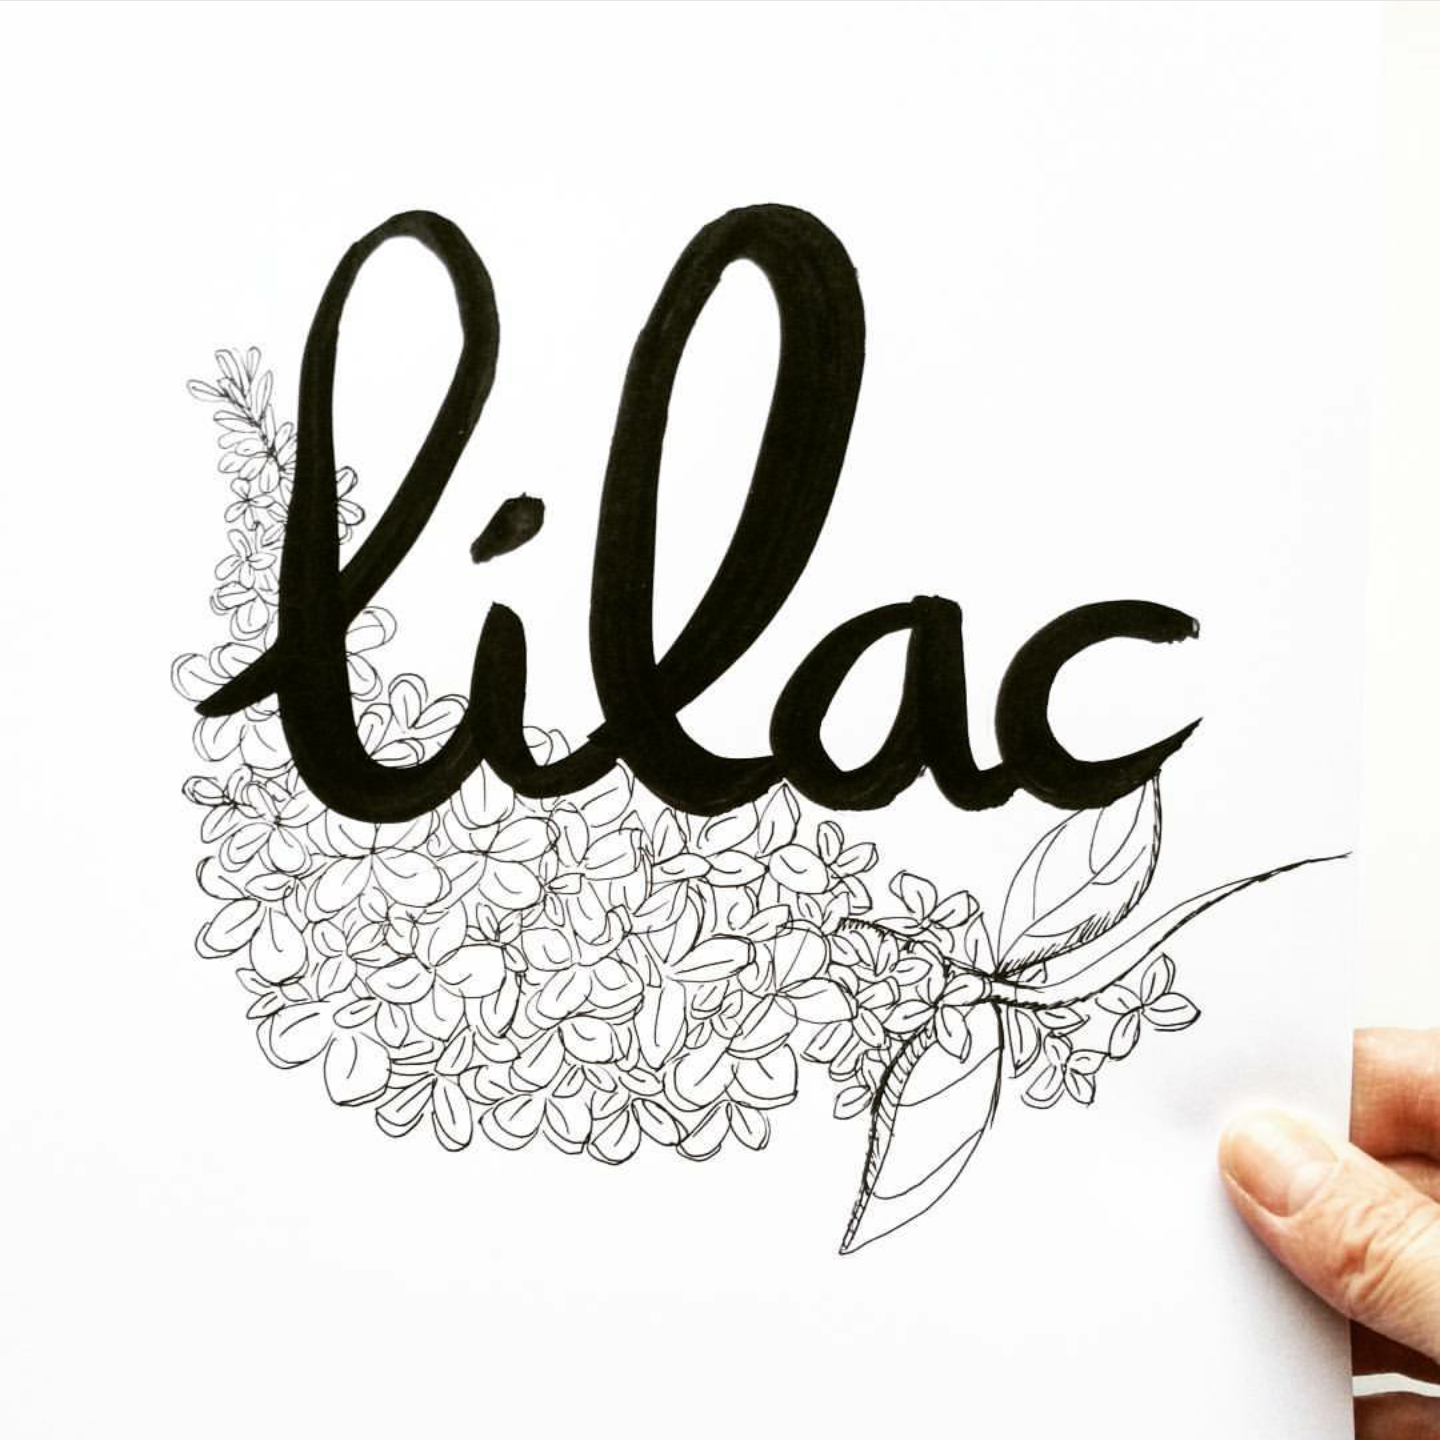 Little Moments In My Life Brush Letter Practice Challenge